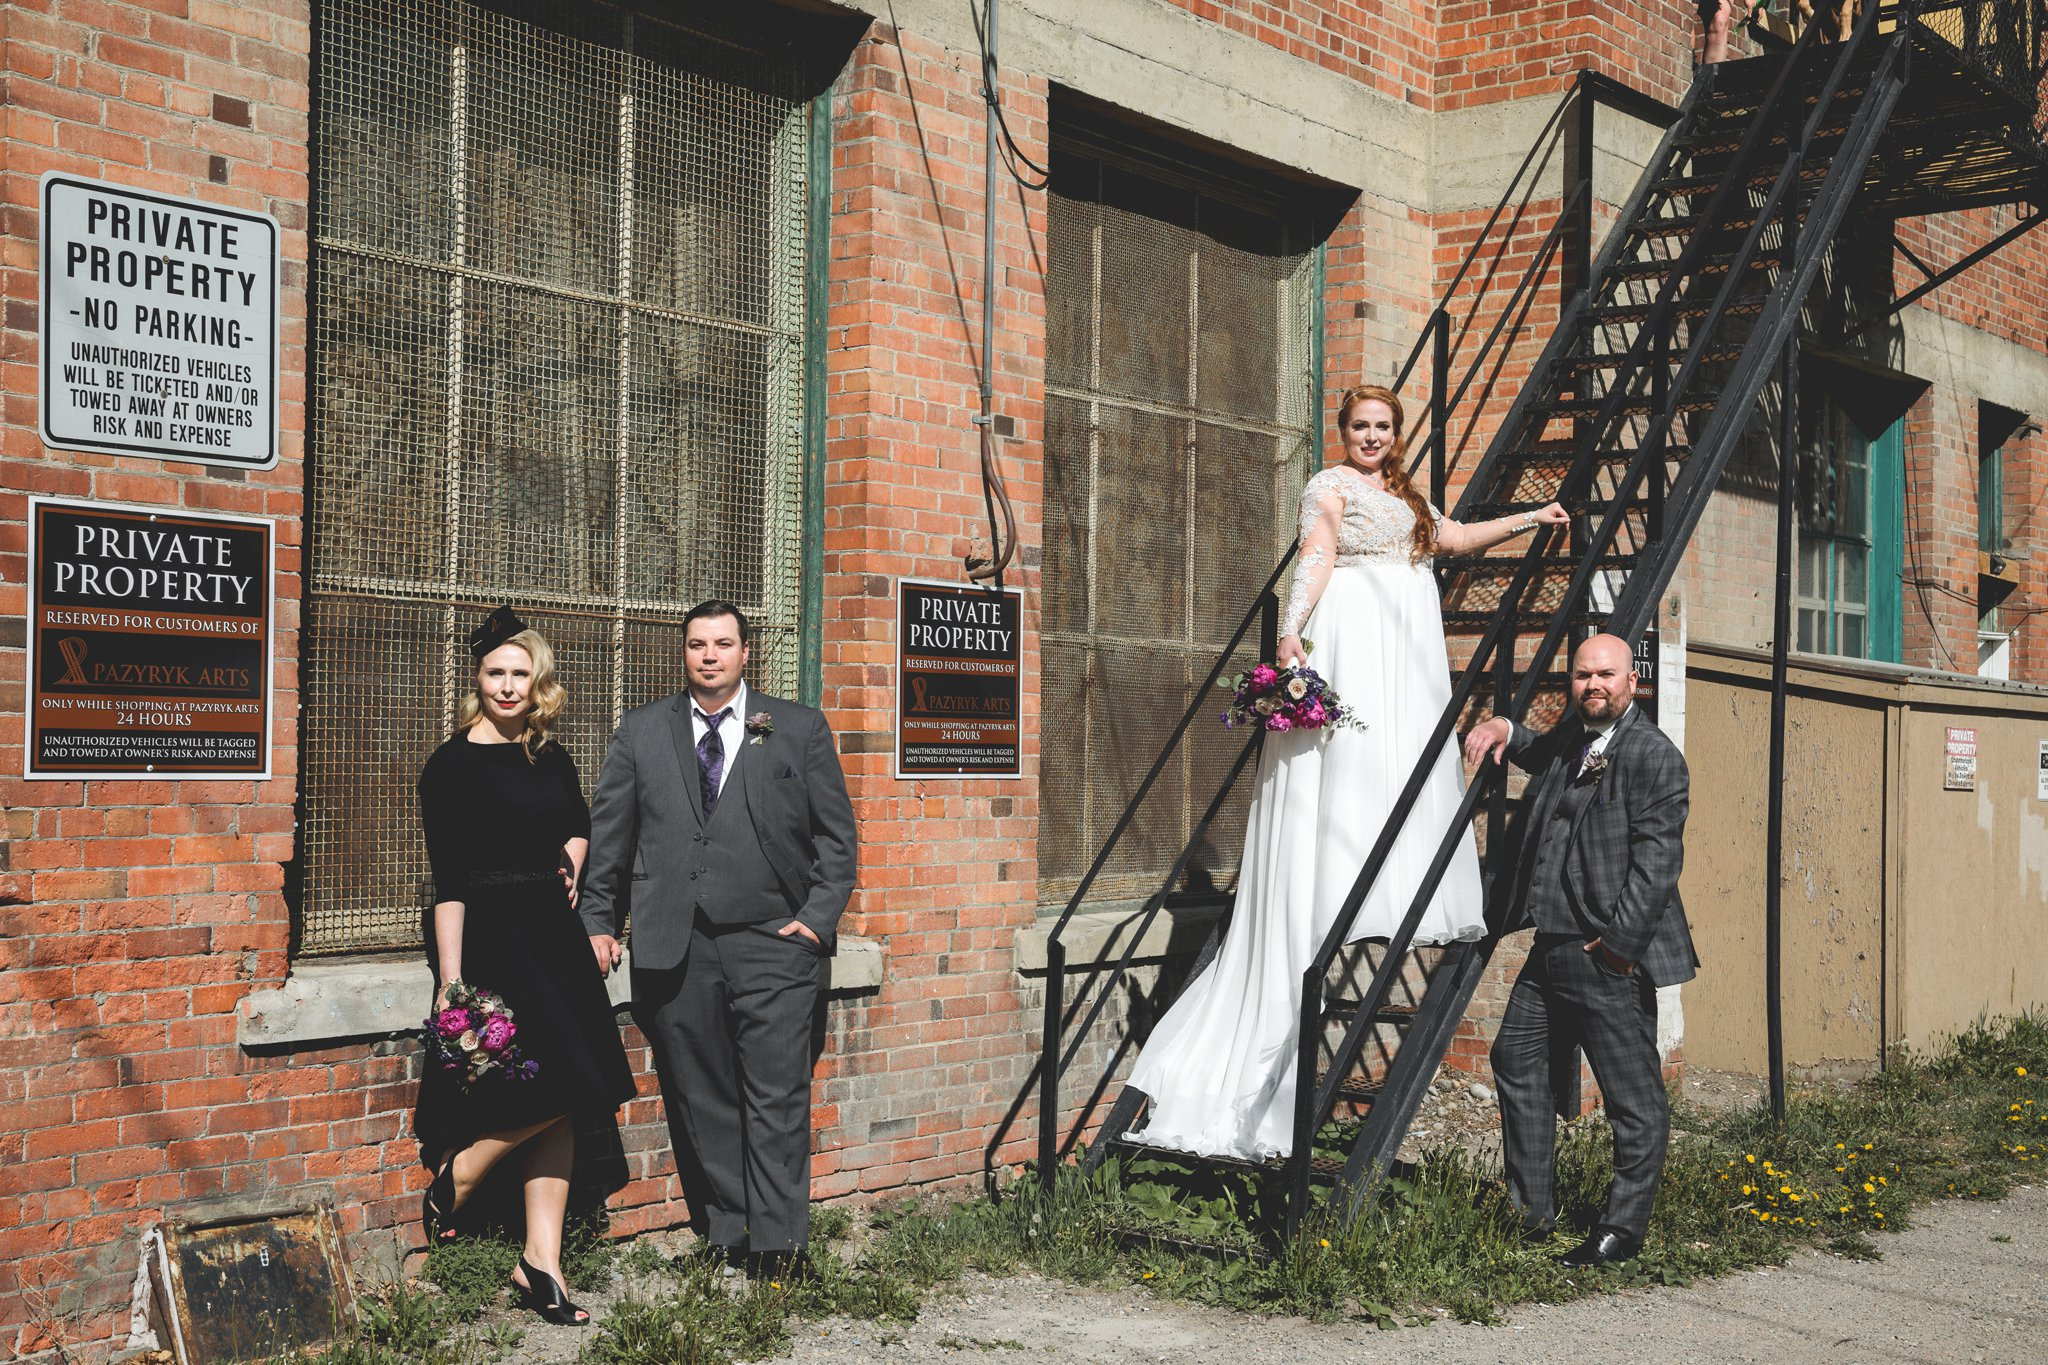 AshleyDaphnePhotography Calgary Wedding Photographer Rouge Inglewood Bride Groom Photography_0095.jpg